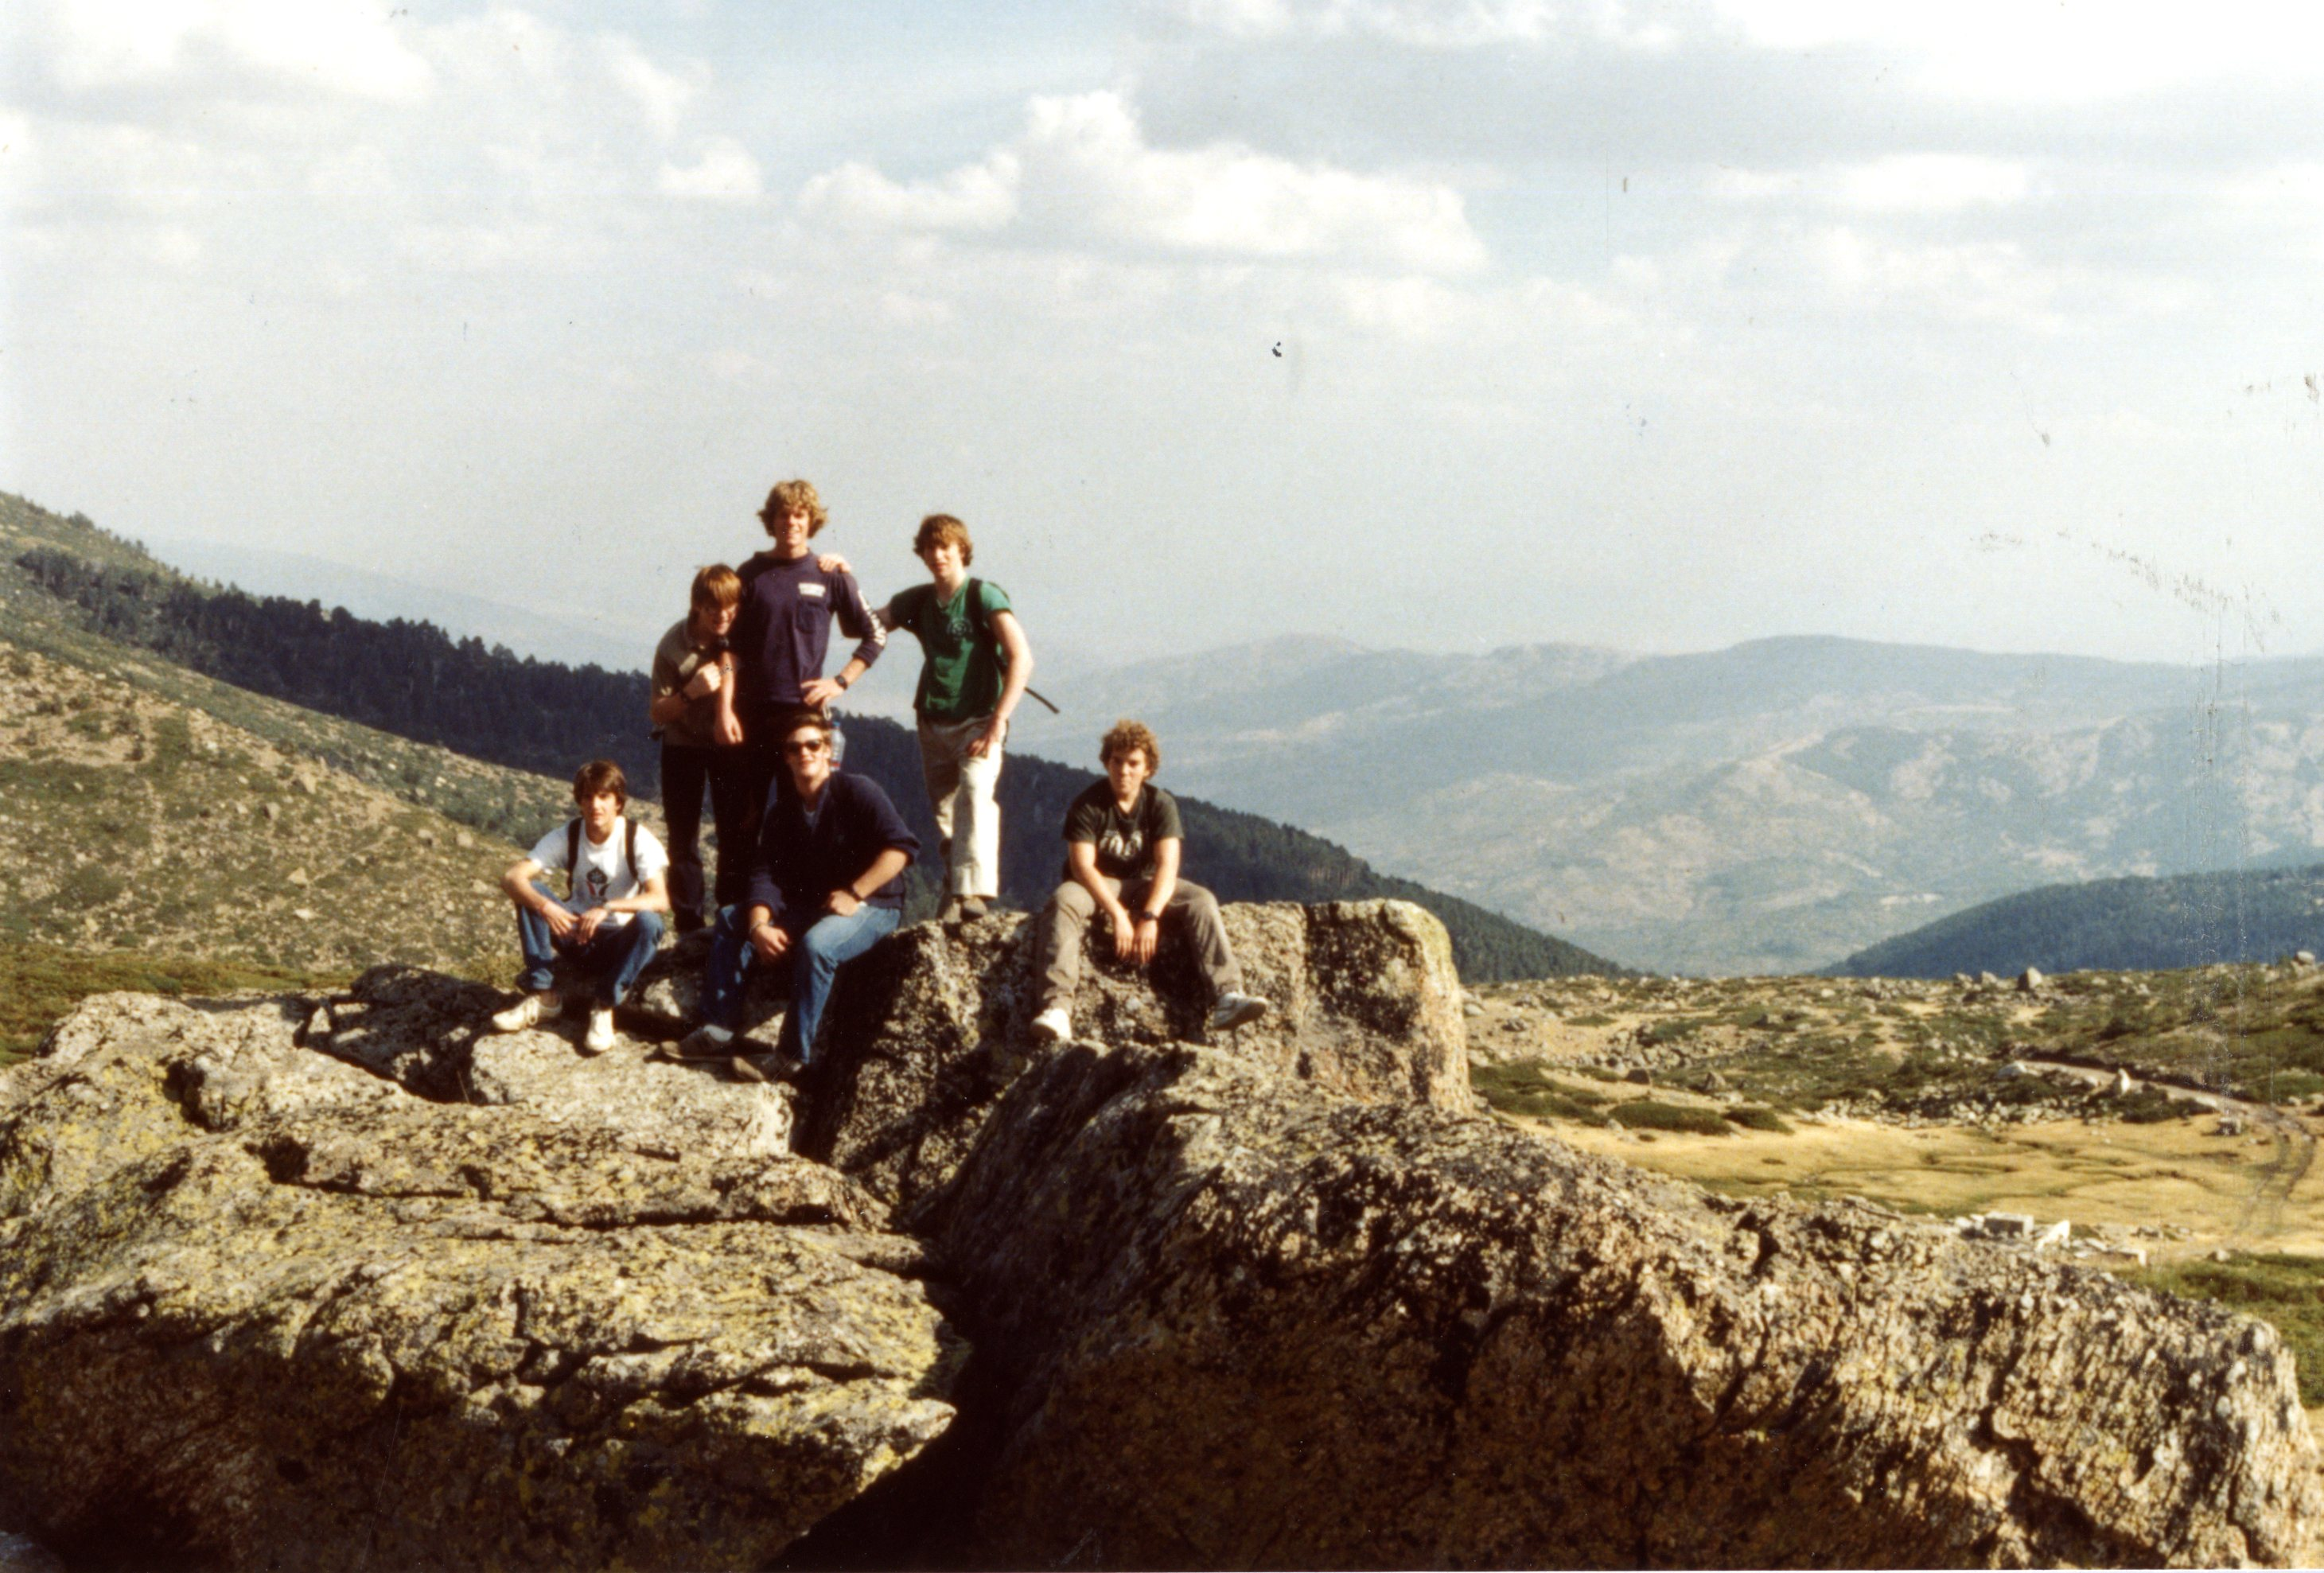 Proctor Academy study abroad in Spain since 1974